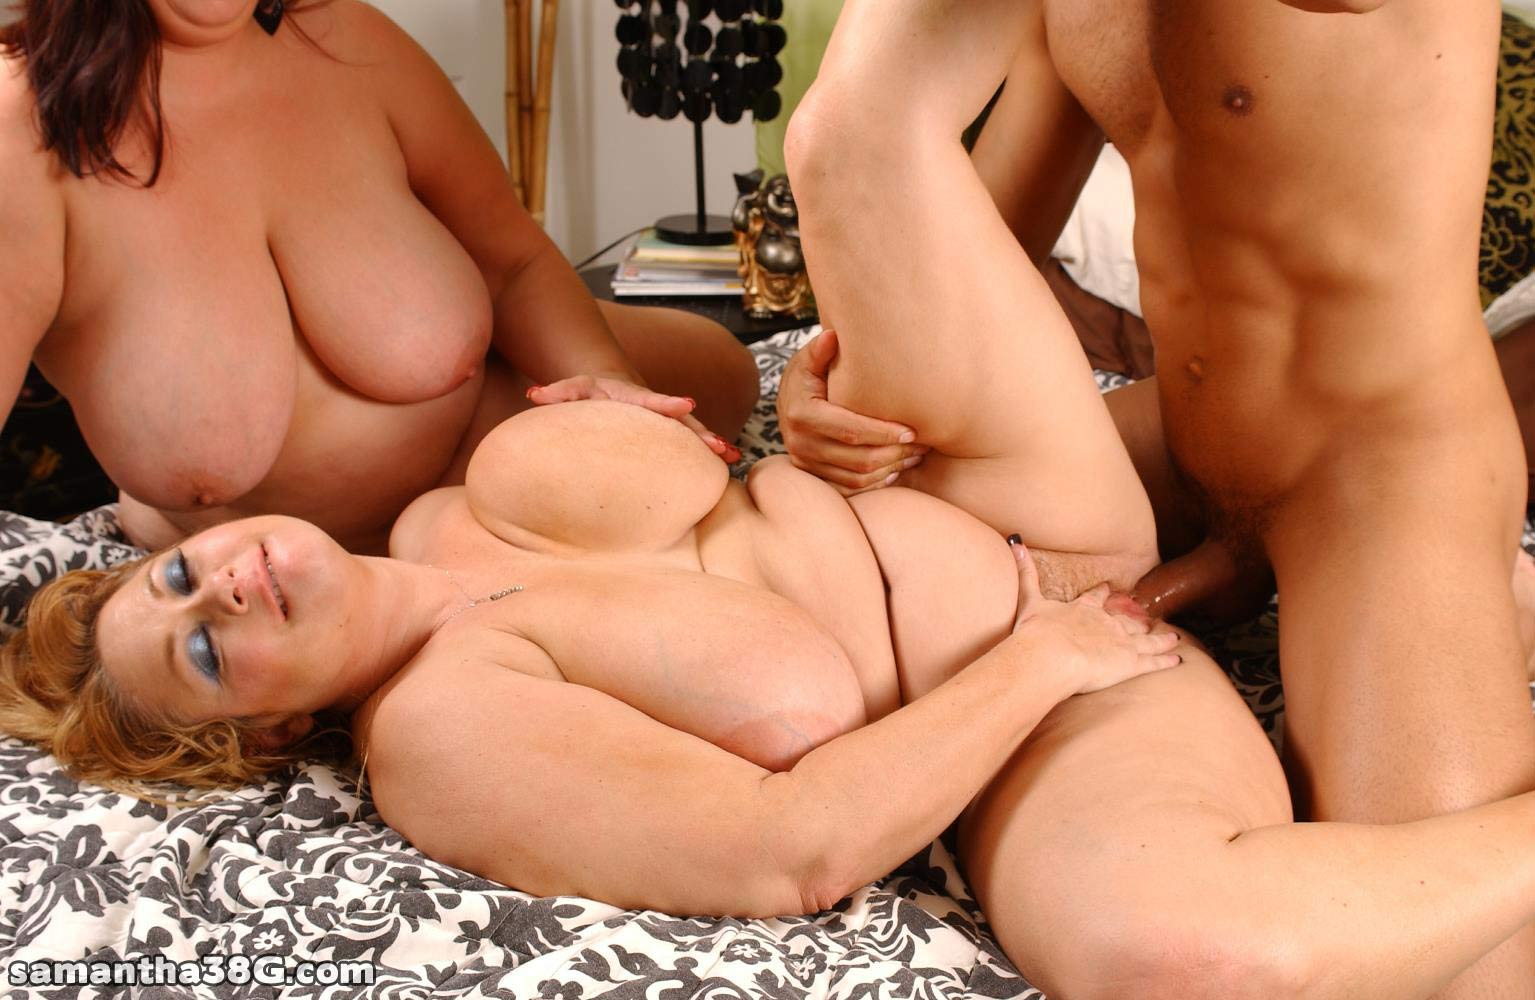 There something? Big tit mature bbw groups interesting